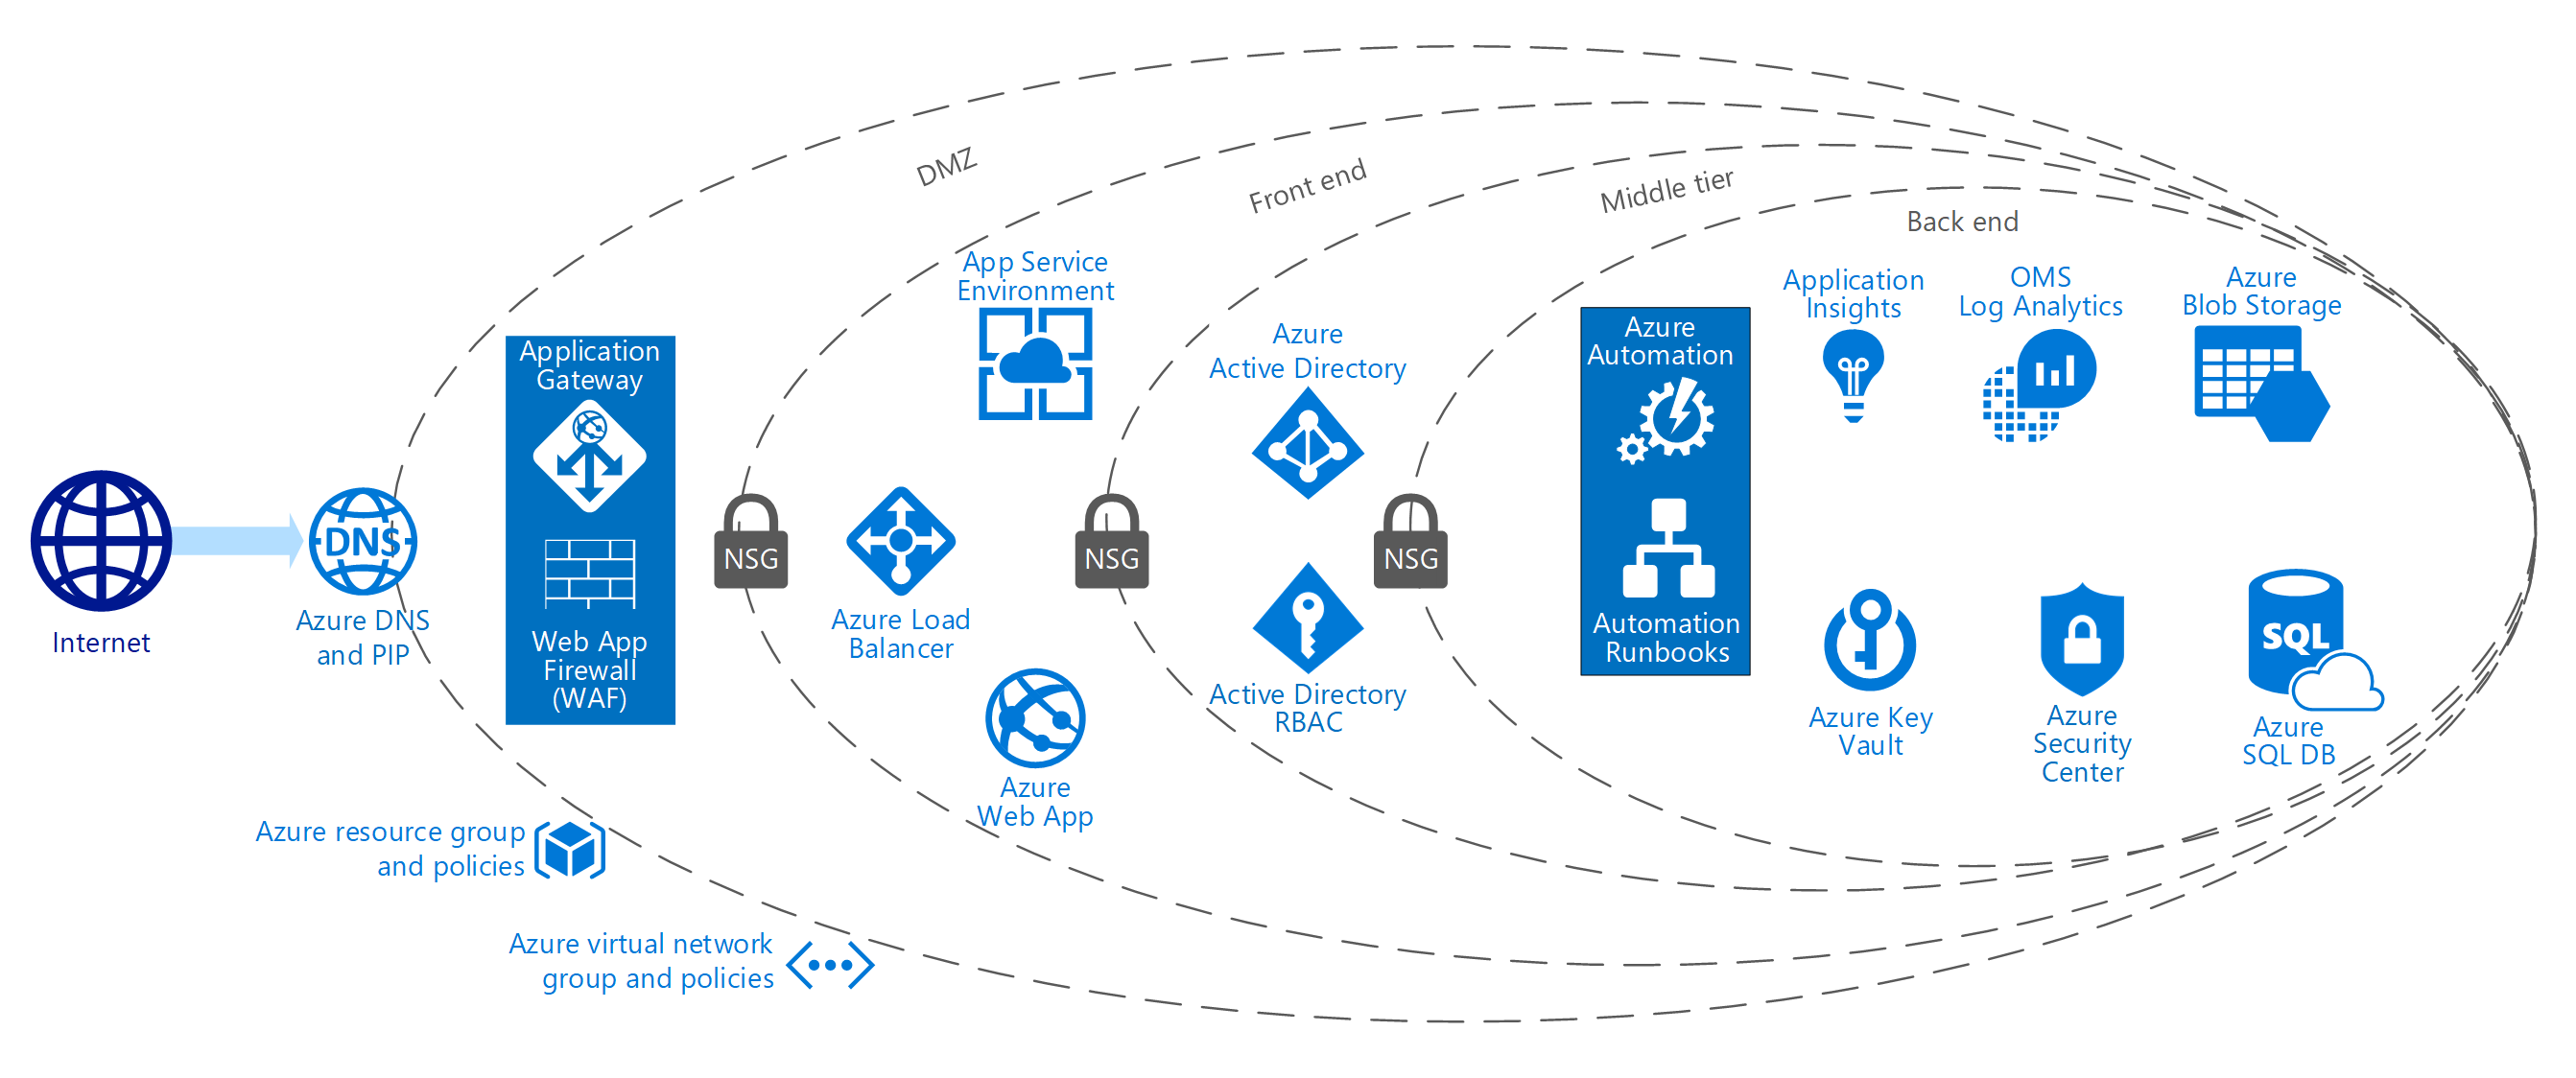 Azure Solutions Blueprint